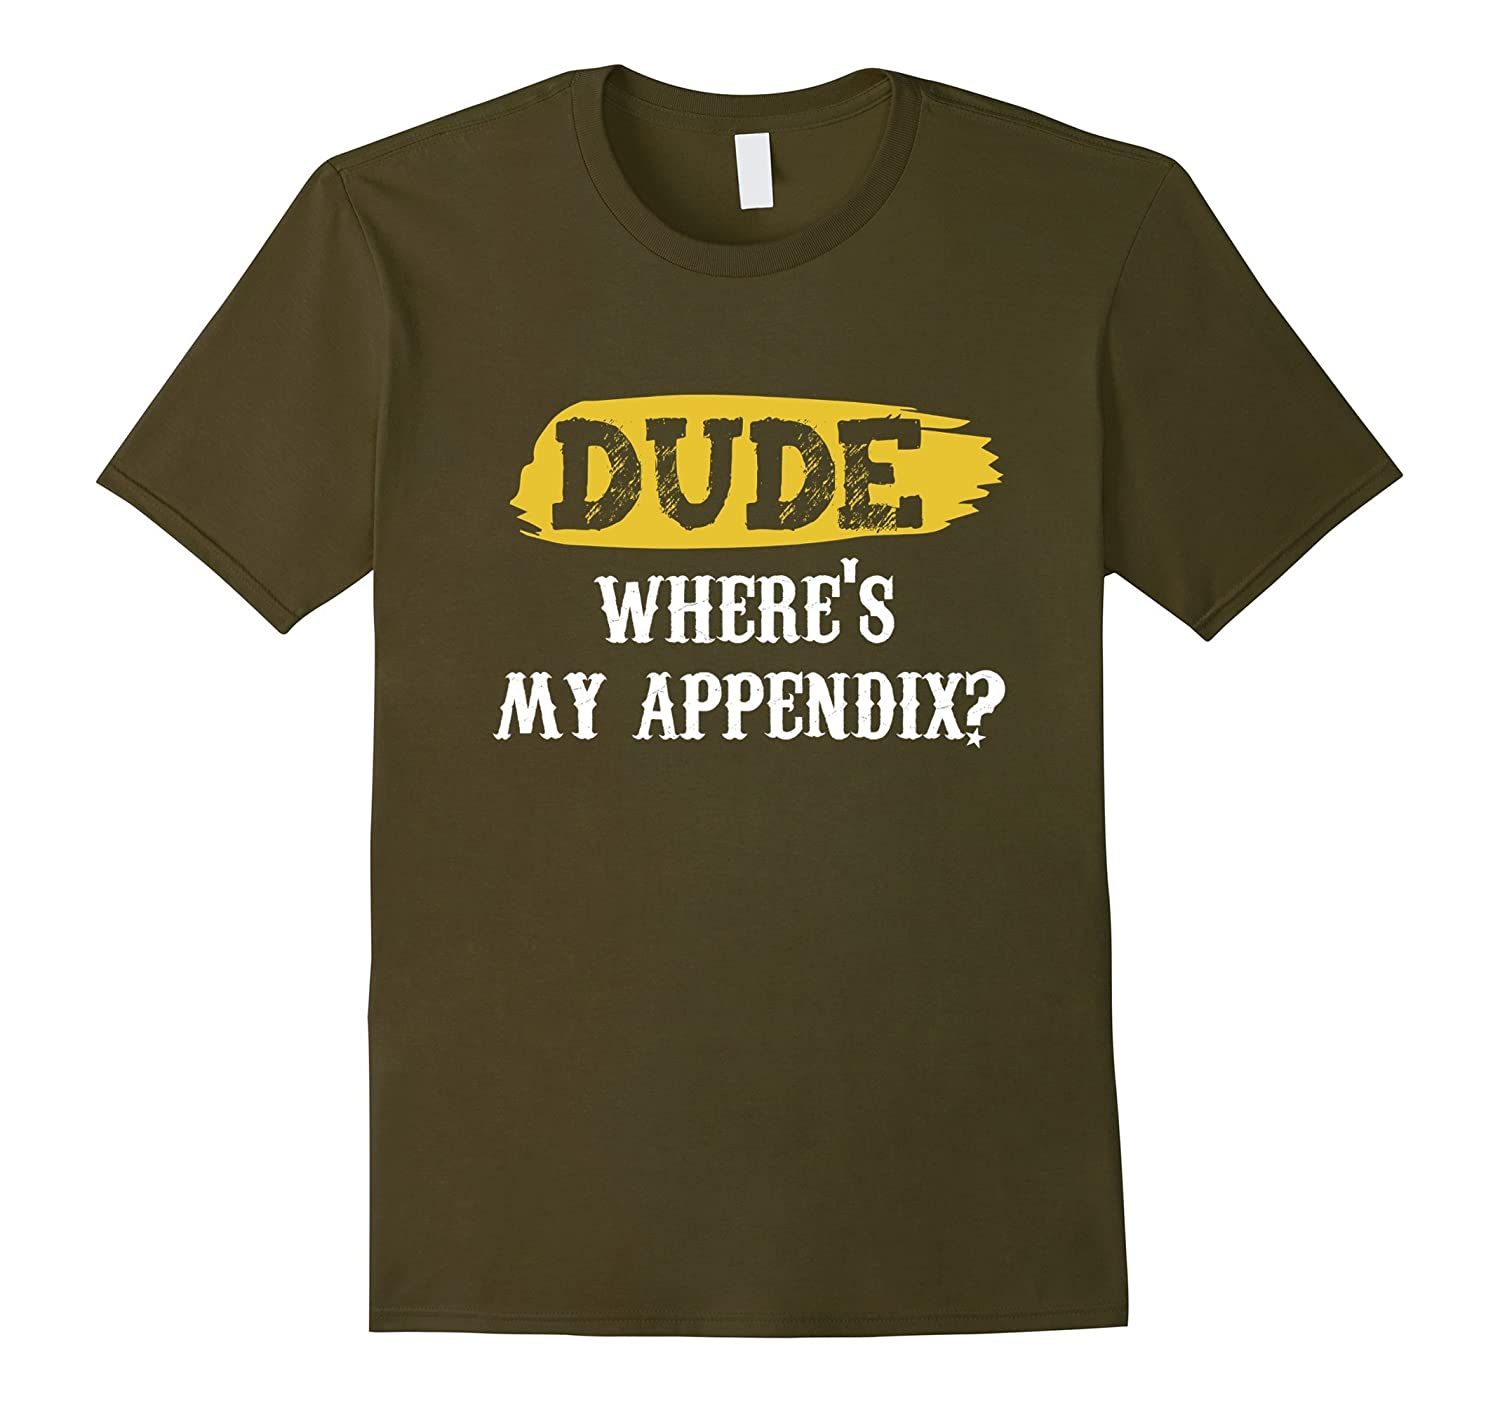 Dude, Where's My Appendix? T-Shirt funny saying Humor-FL